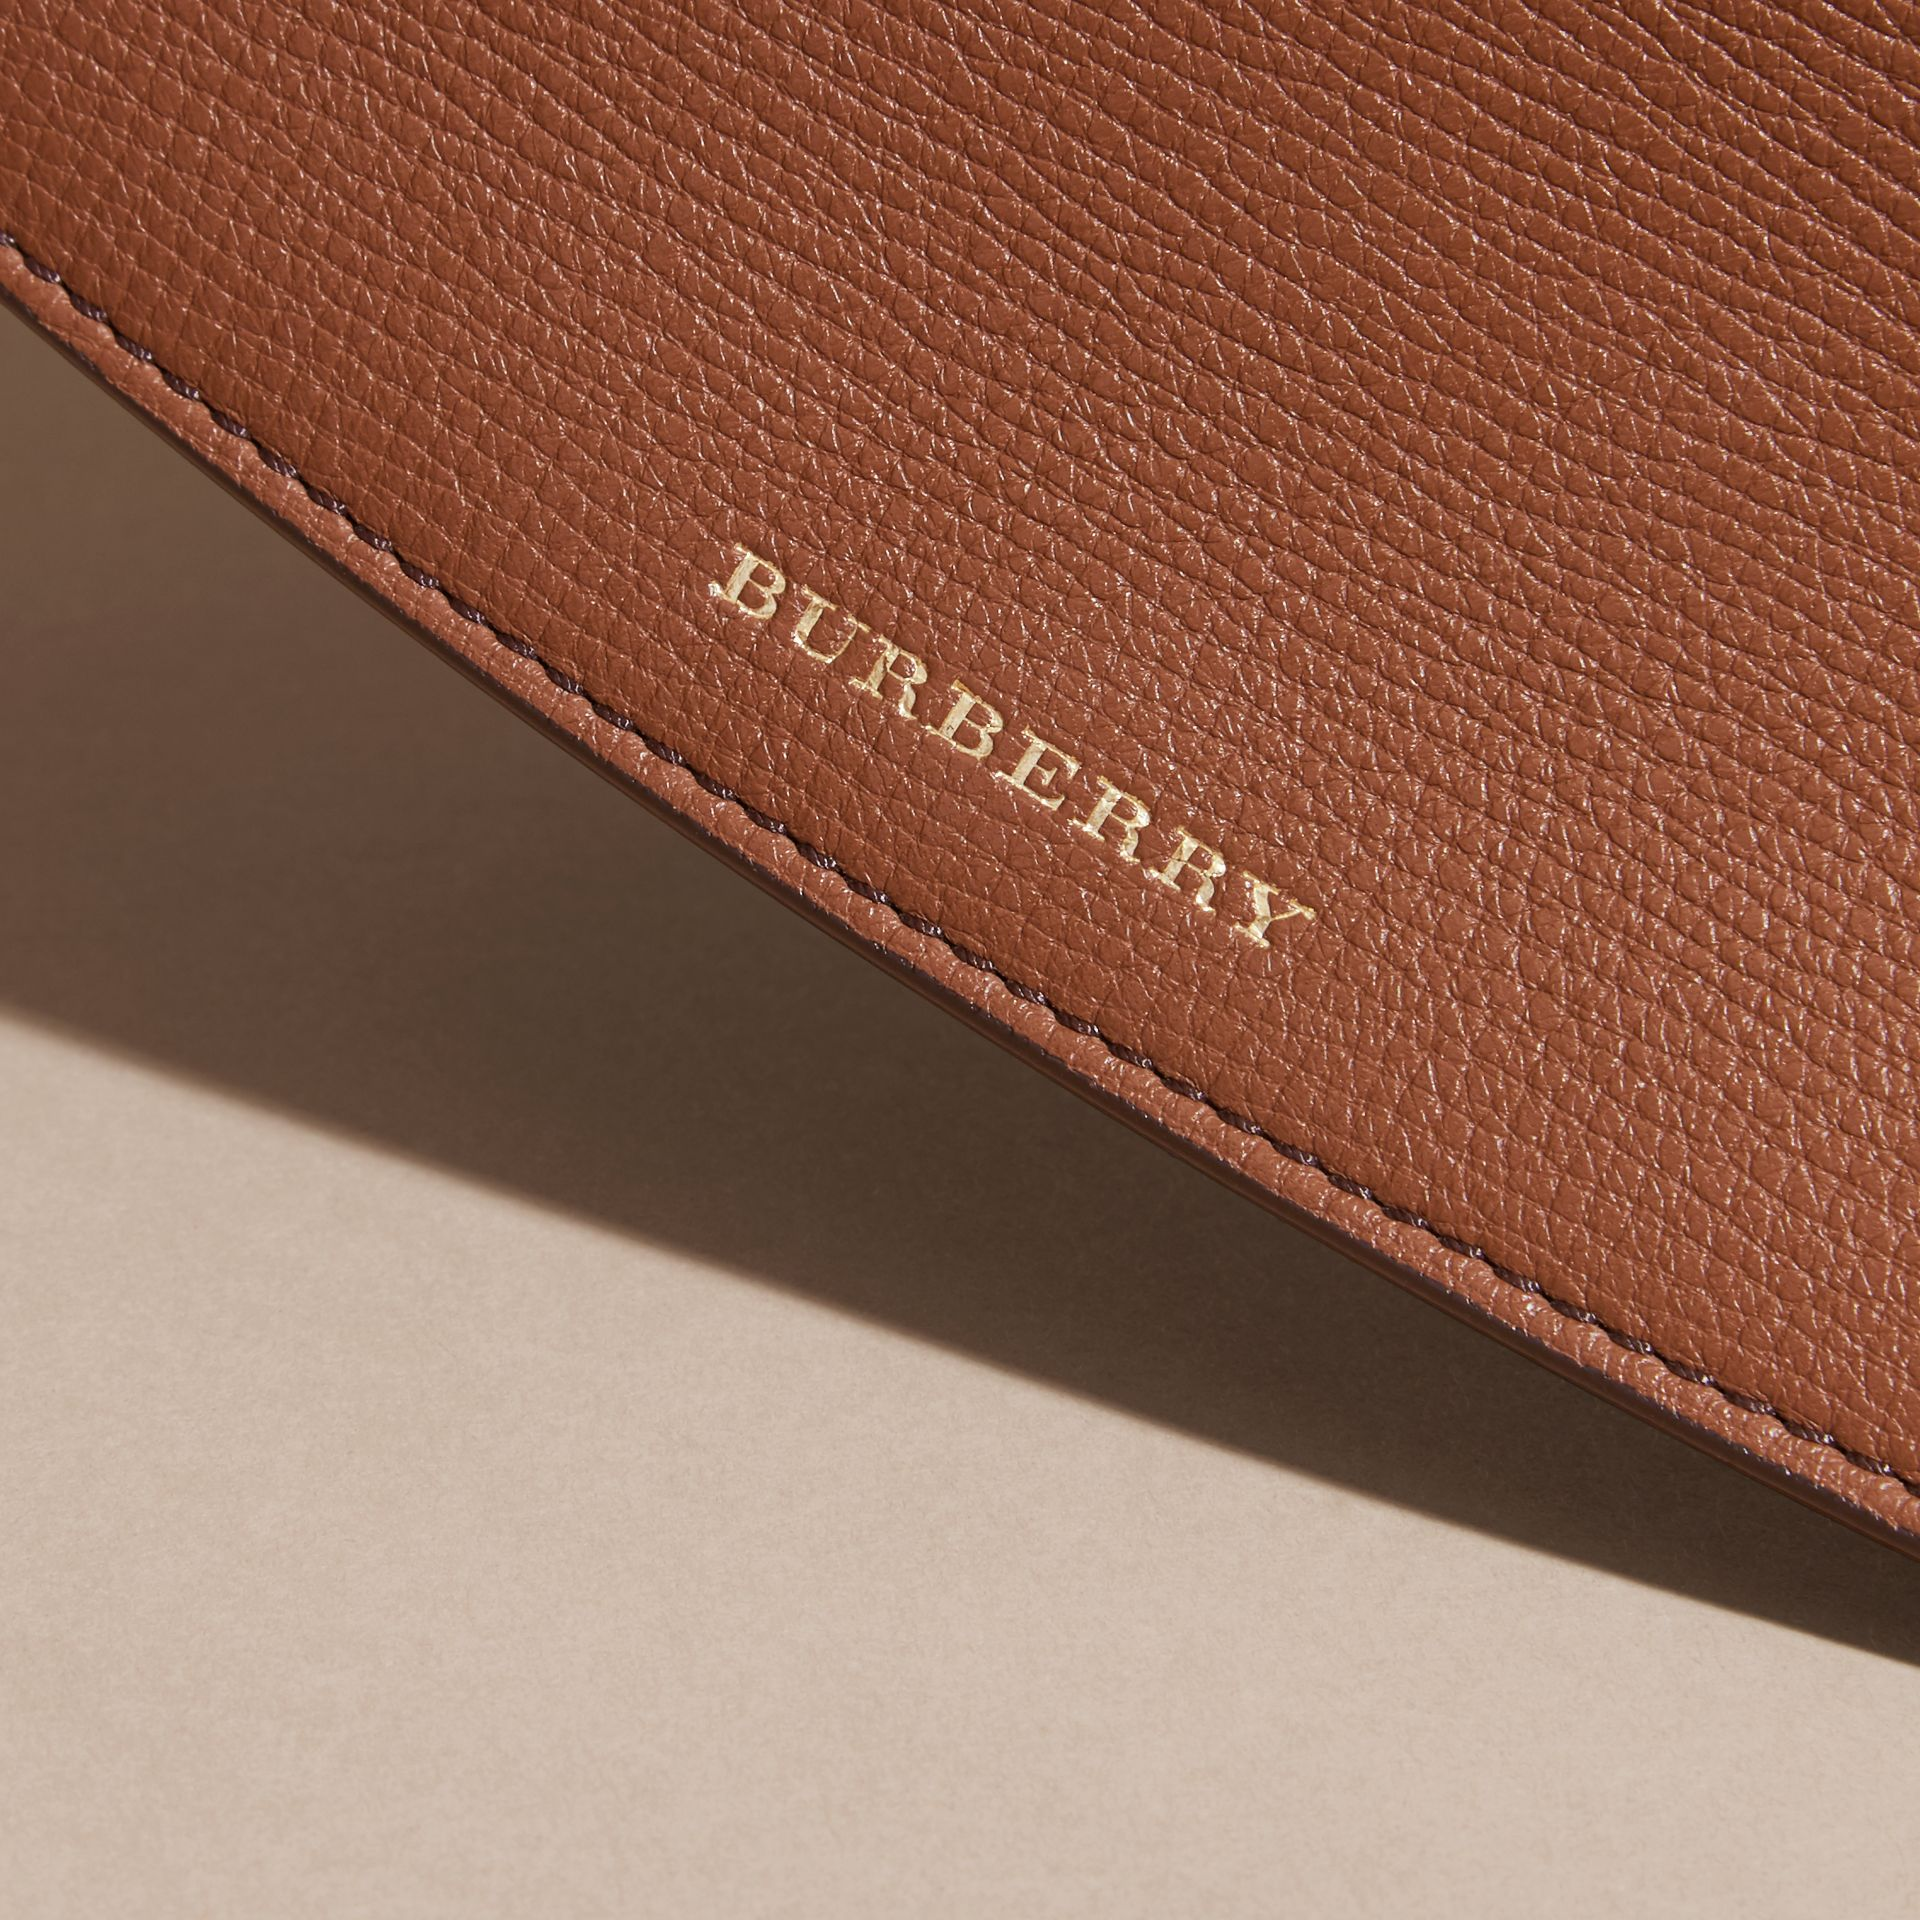 Portefeuille continental en coton House check et cuir (Hâle) - Femme | Burberry - photo de la galerie 4